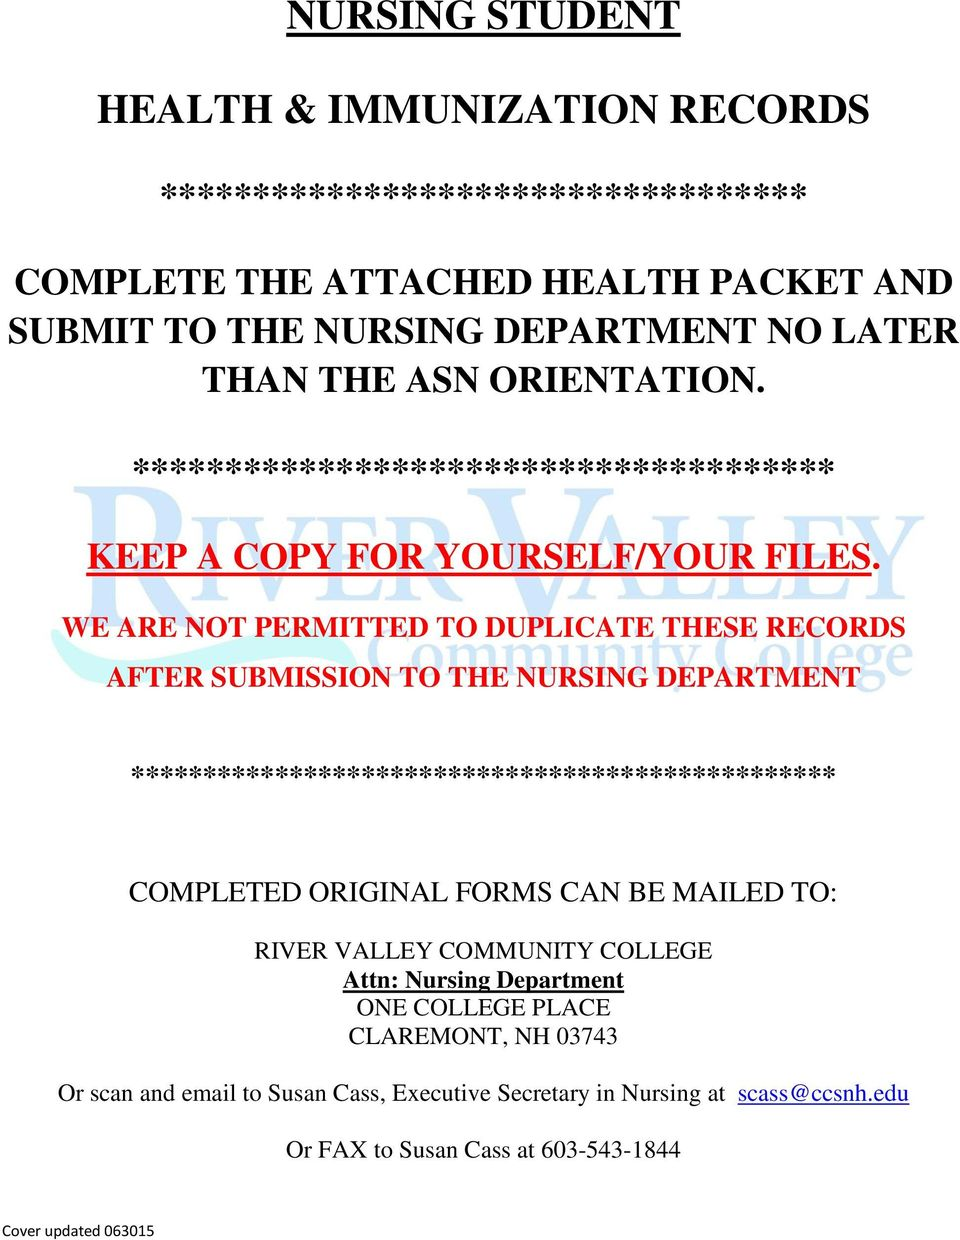 WE ARE NOT PERMITTED TO DUPLICATE THESE RECORDS AFTER SUBMISSION TO THE NURSING DEPARTMENT ************************************************* COMPLETED ORIGINAL FORMS CAN